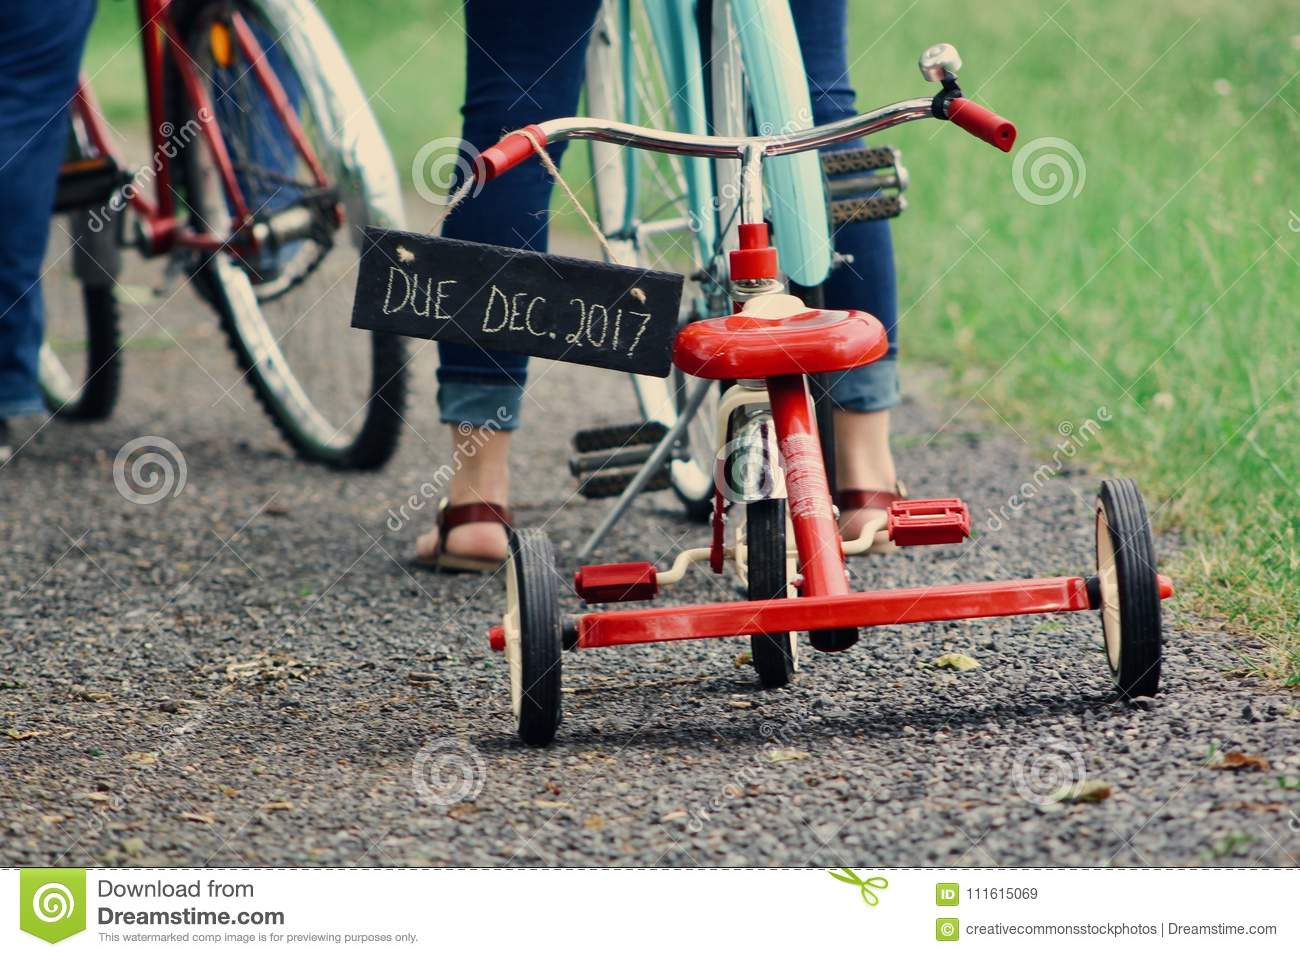 69faf73d1f0 Toddler's Red Tricycle. Public Domain image. Toddler's Red Tricycle ...